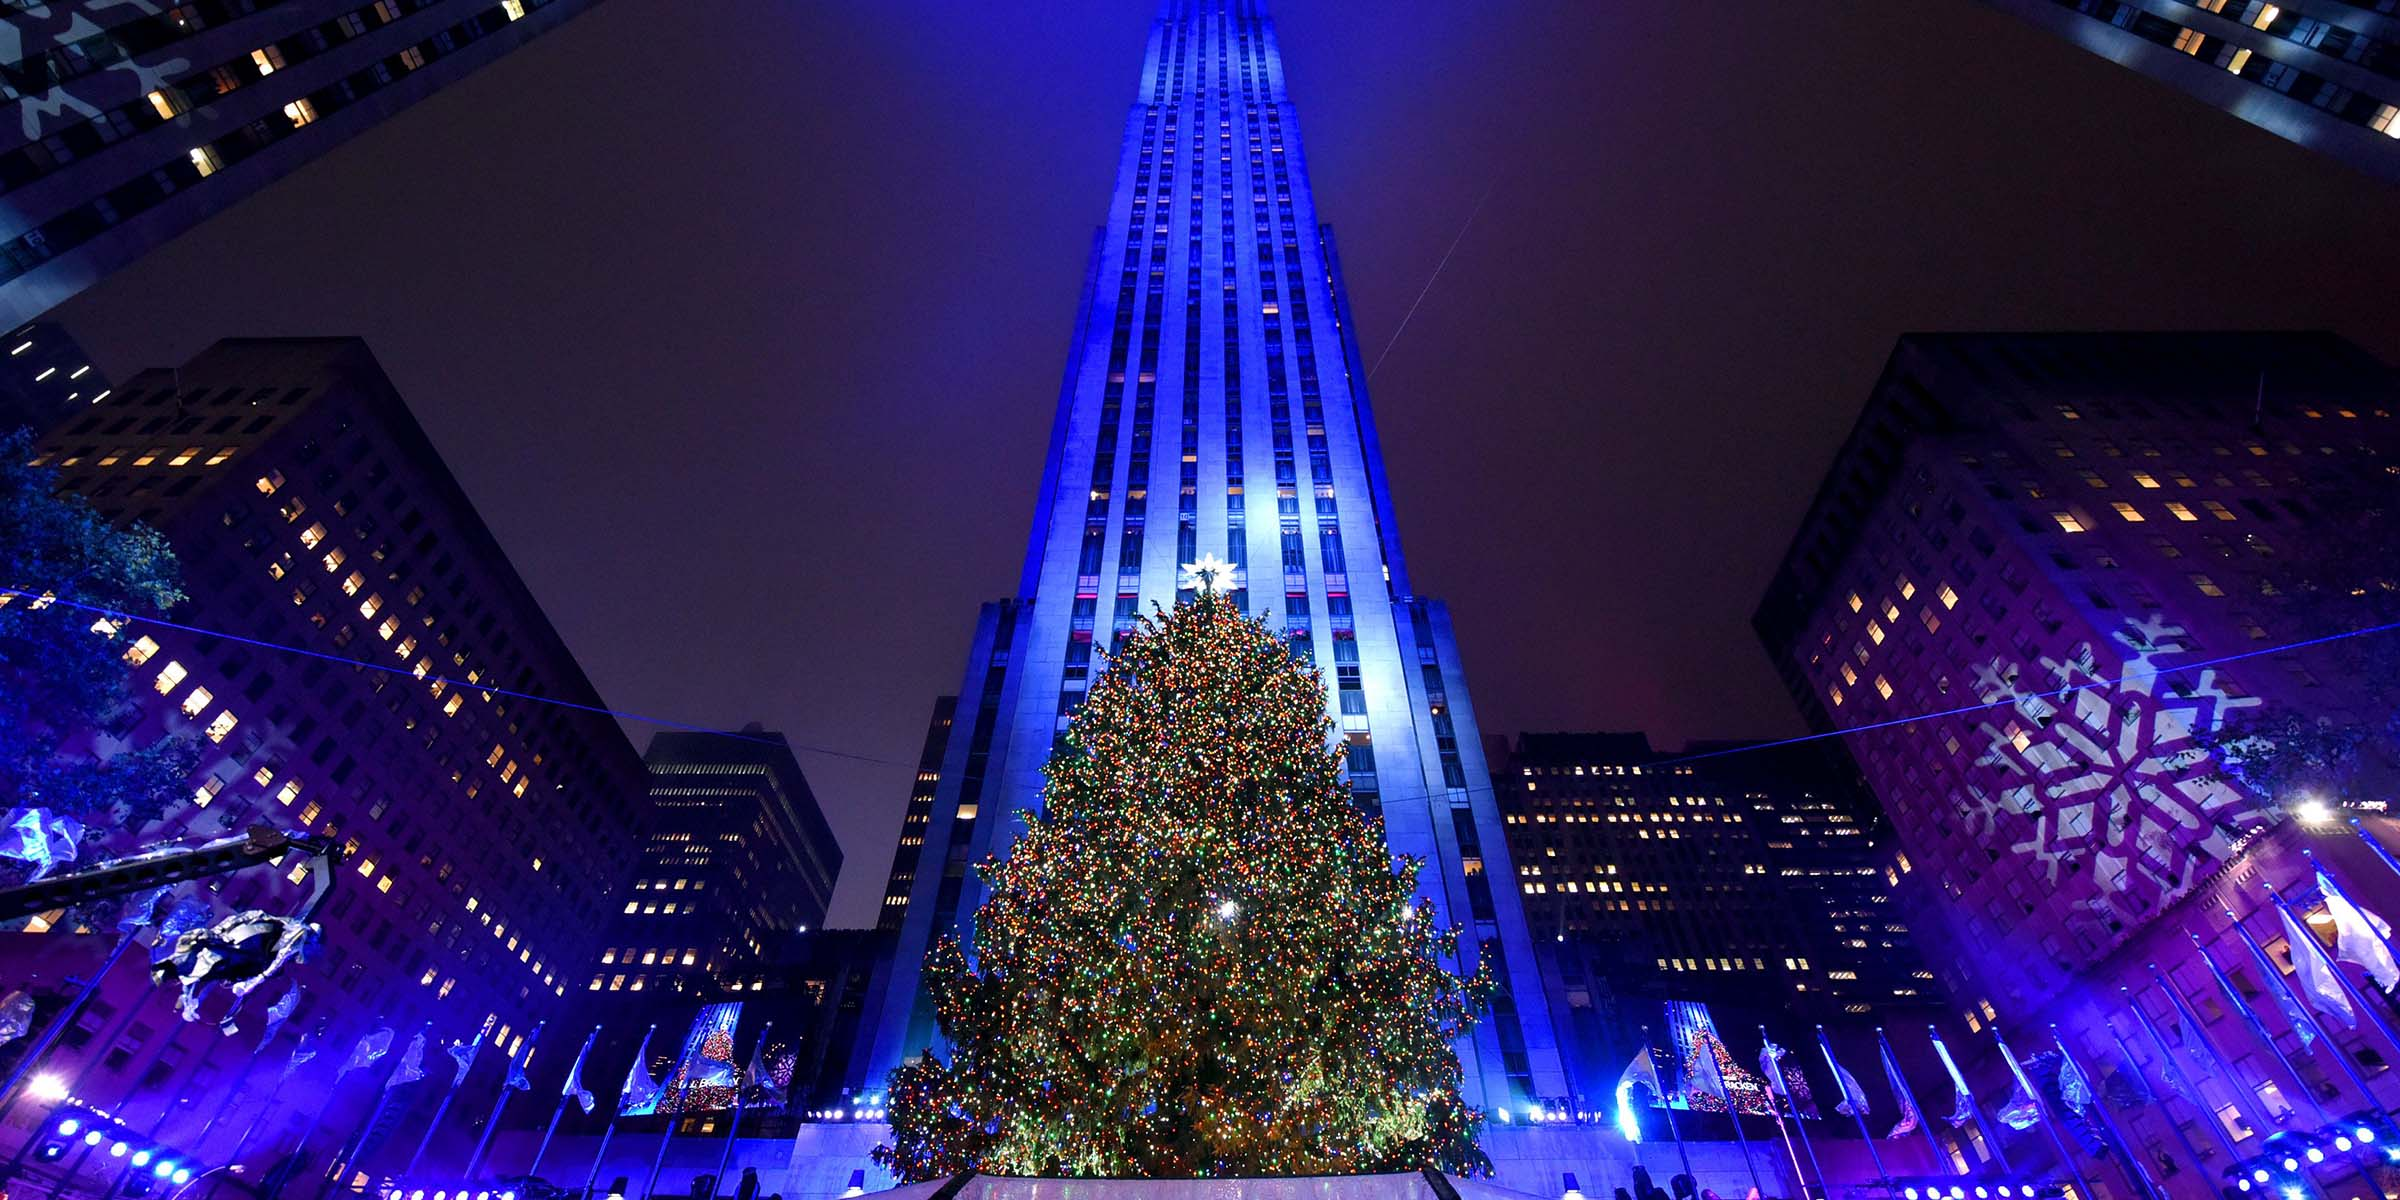 Rockefeller Christmas Tree Lighting 2019 Performers Rockefeller Tree Lighting 2018: How to watch, who is performing & more